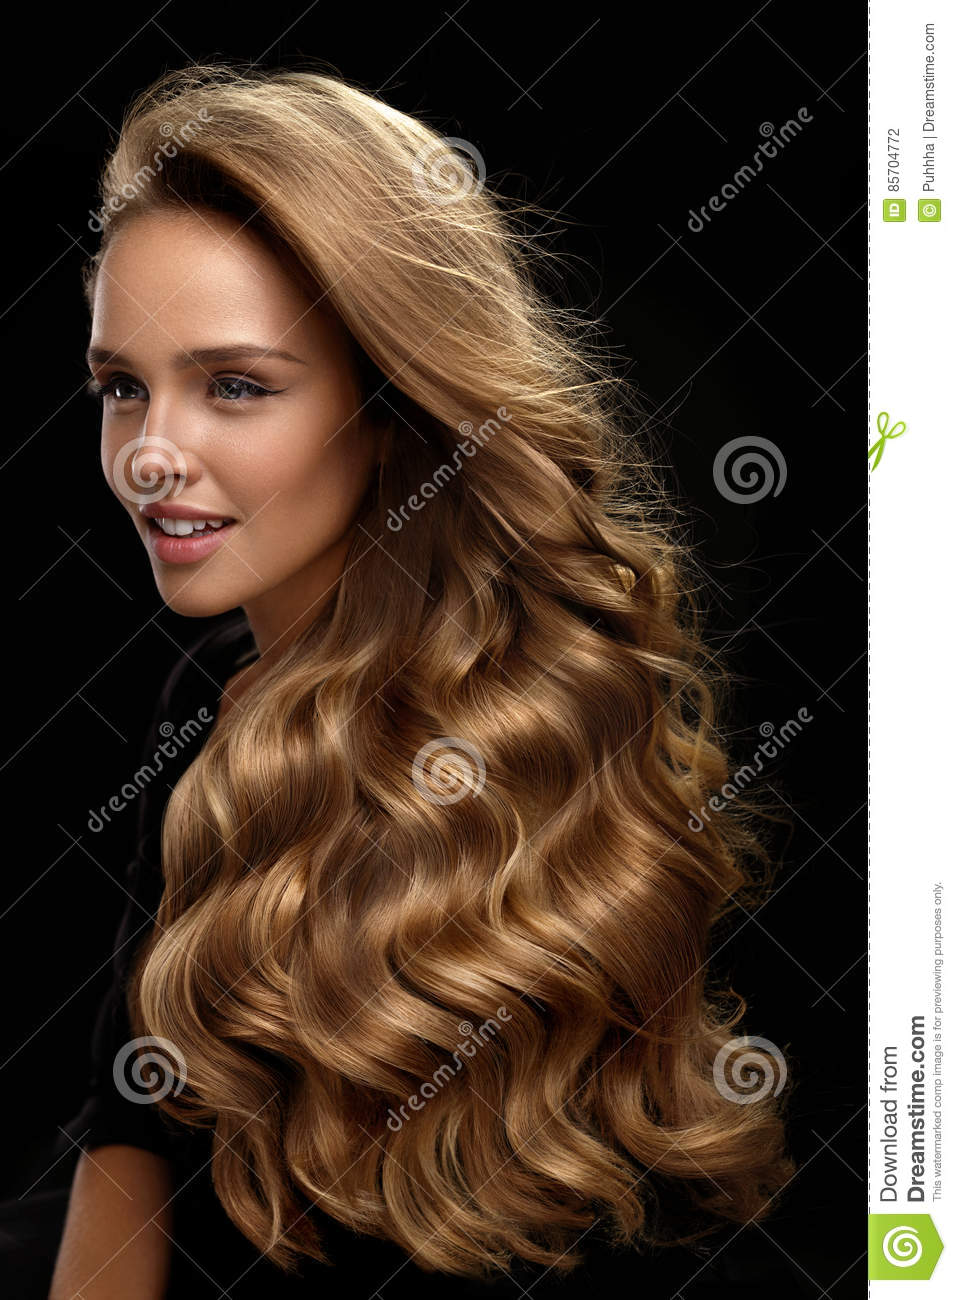 Beautiful Long Hair Woman Model With Blonde Curly Hair Stock Photo